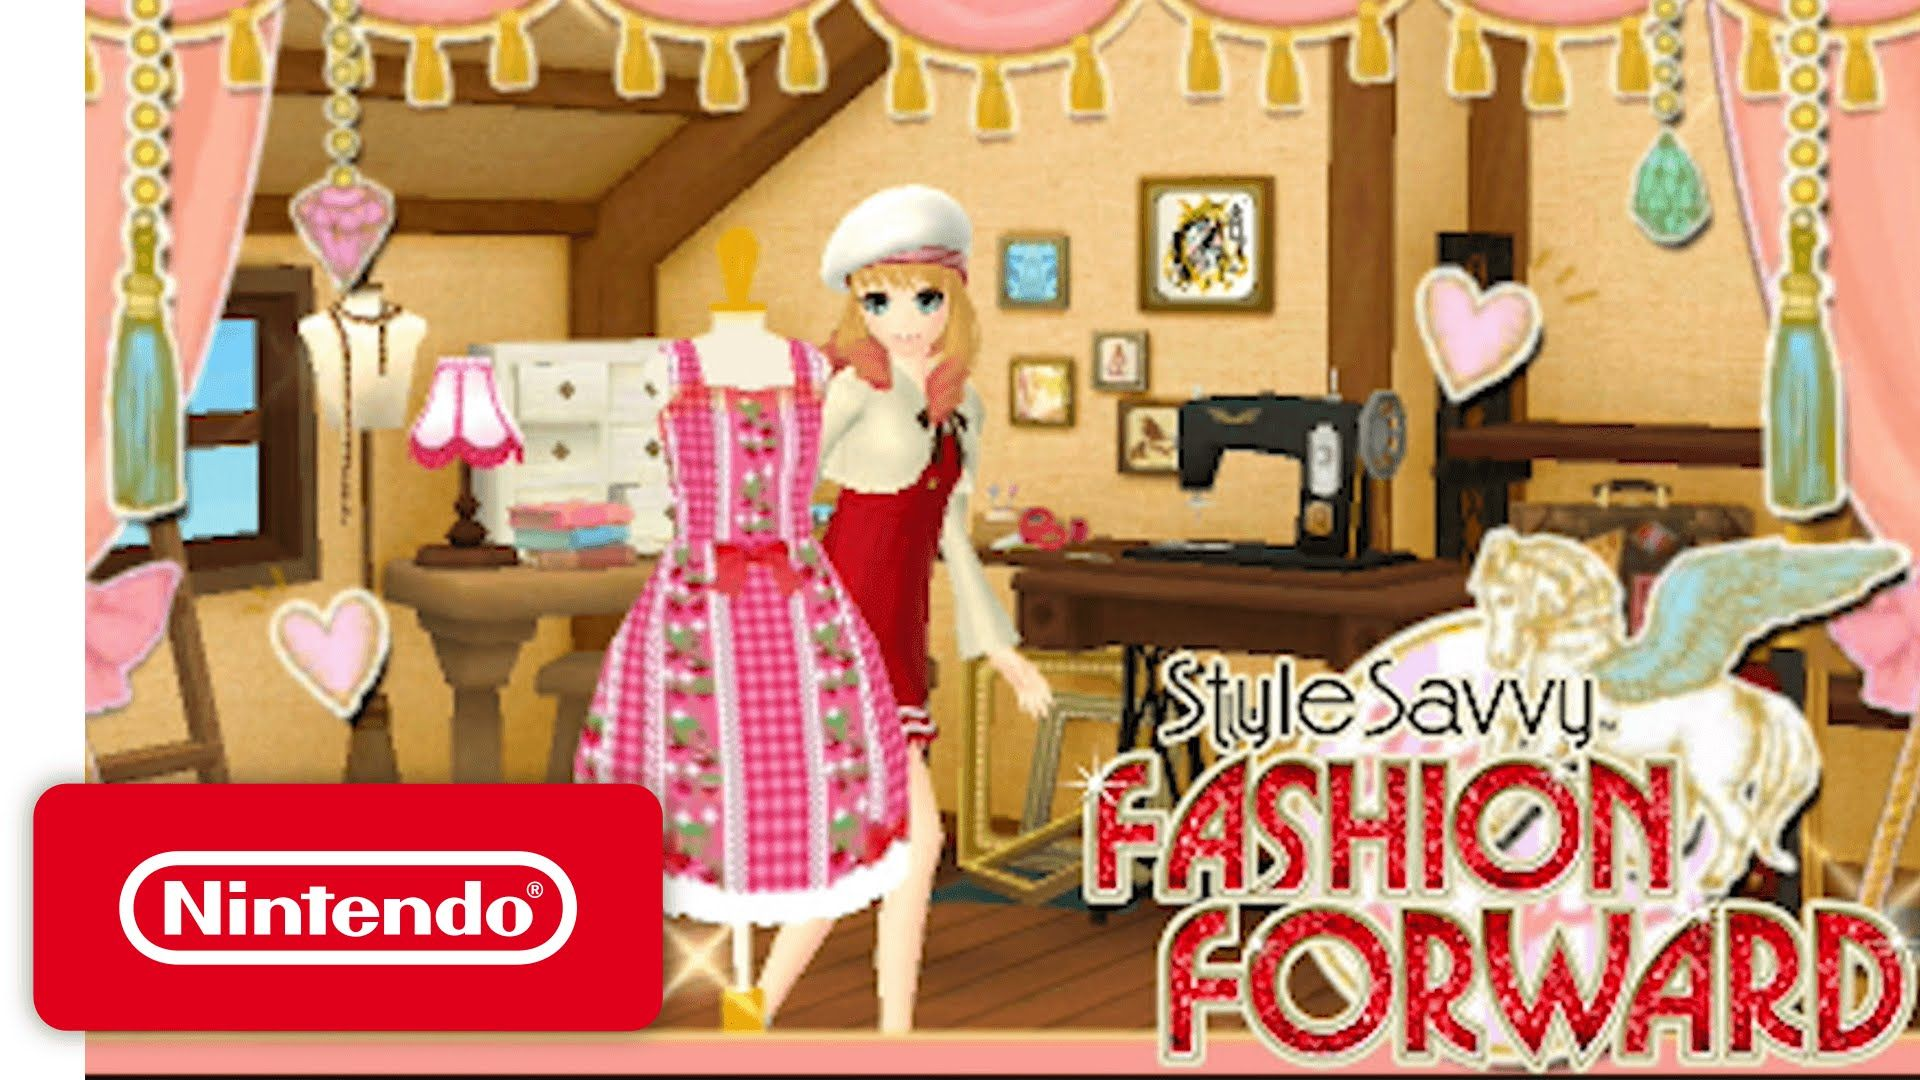 Style Savvy Fashion Forward Show Off Your Sense Of Style Style Savvy Fashion Forward Style Savvy Fashion Forward